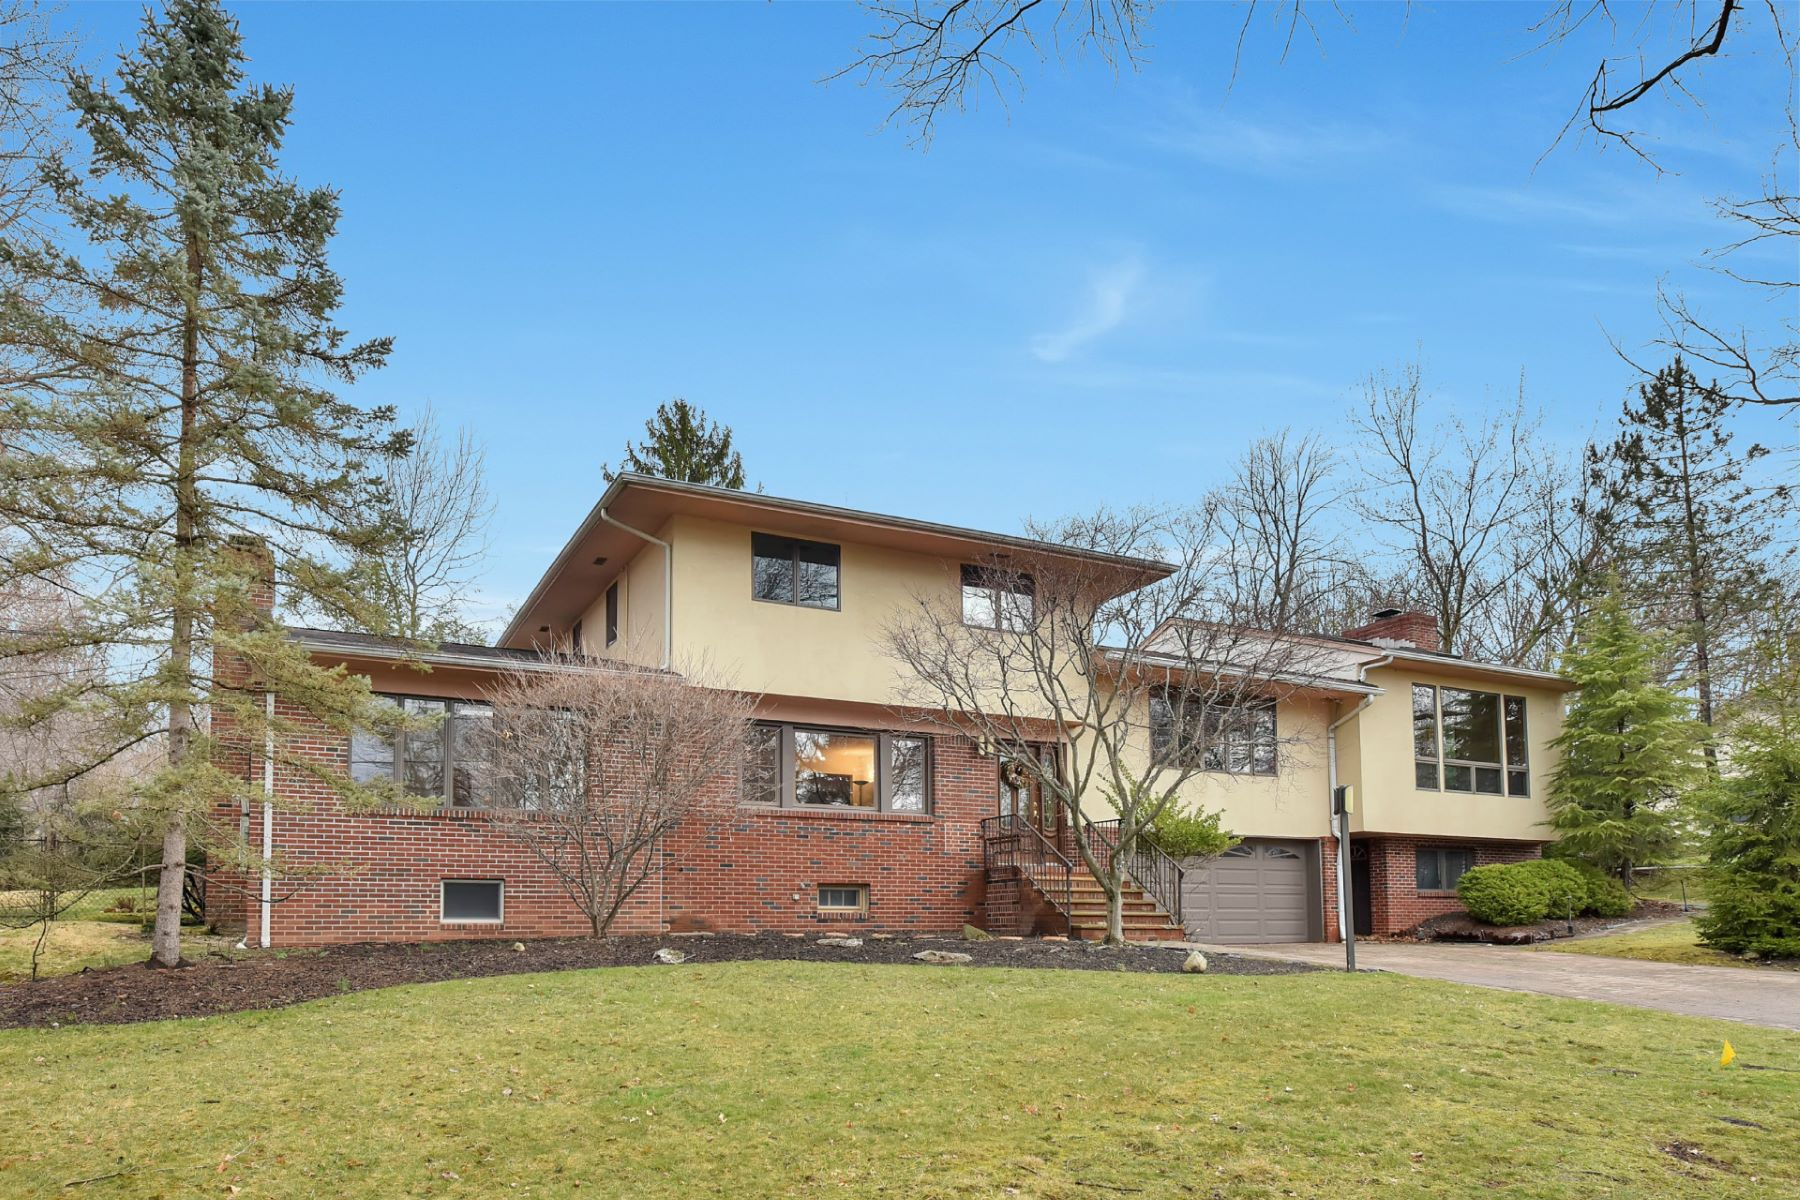 Single Family Home for Sale at Expansive Contemporary 30 Forest Ave Old Tappan, 07675 United States